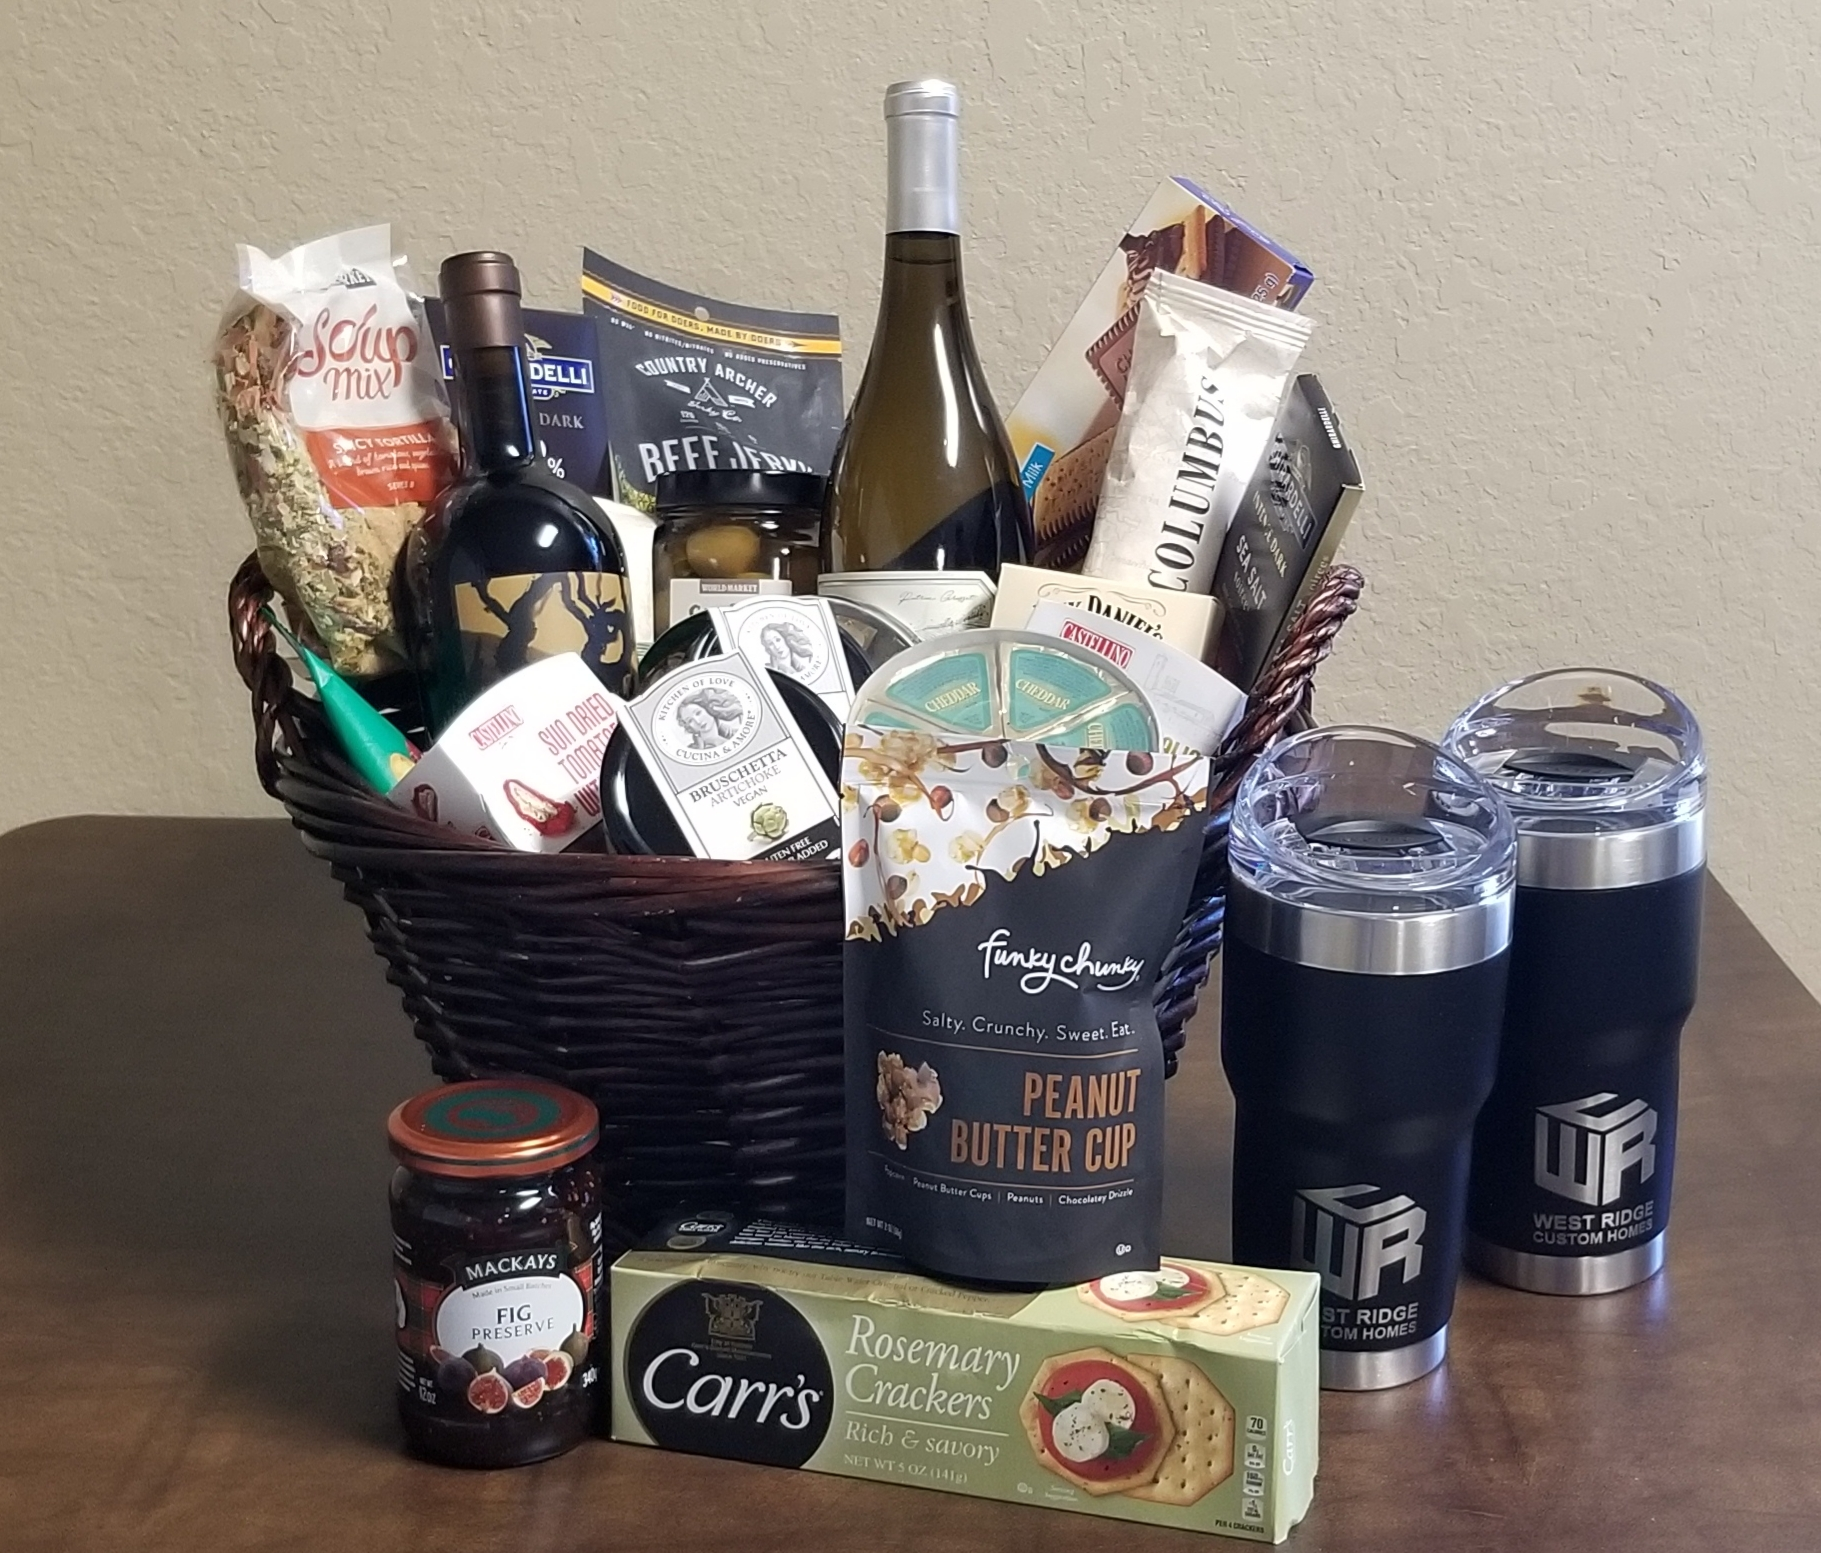 Online Secret Auction: Wines (2), charcuterie and chocolates, Pelican Travel Tumblers (2) w/slide lids presented in a decorative wicker basket